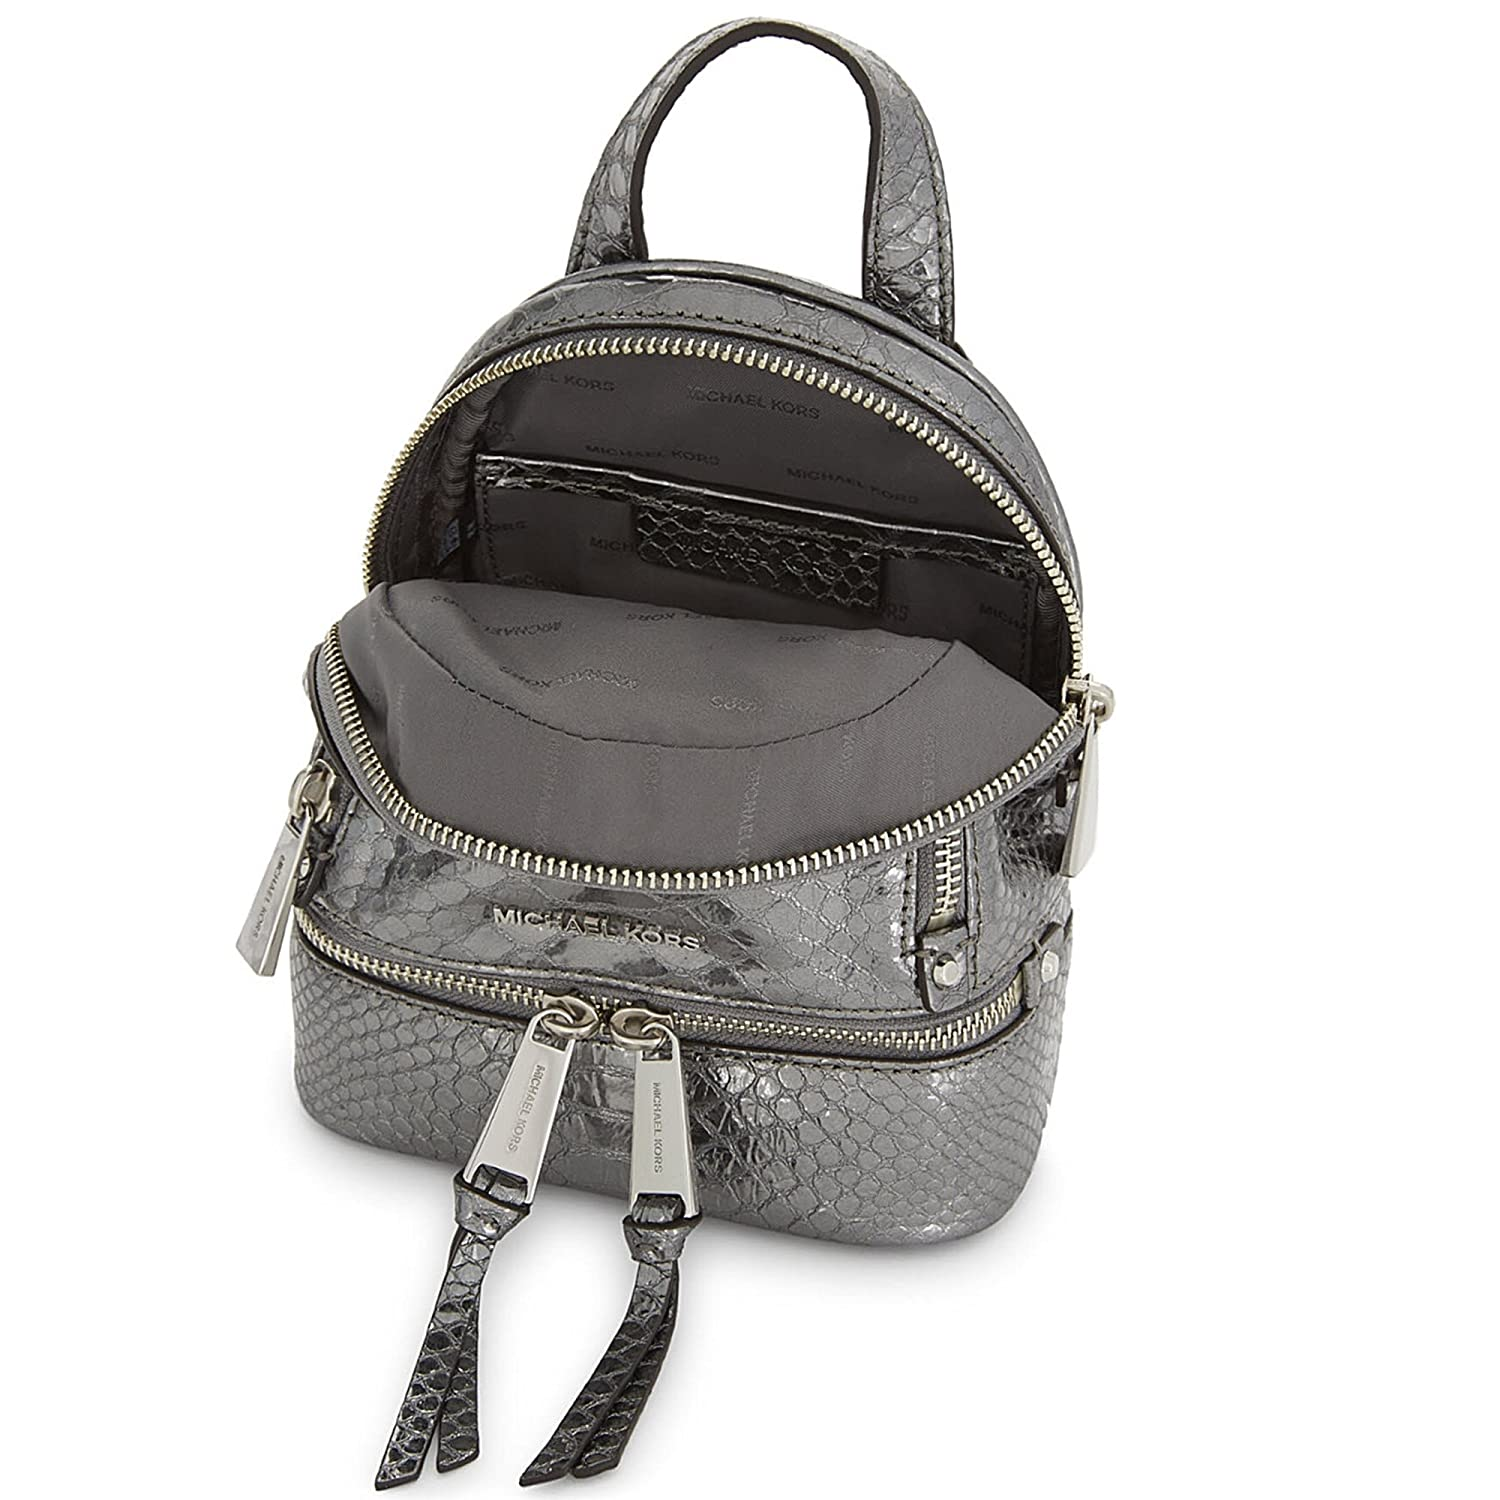 1183127c8b03 MICHAEL by Michael Kors Rhea Zip Extra Small Python Embossed Leather  Backpack one size Pewter: Amazon.co.uk: Shoes & Bags